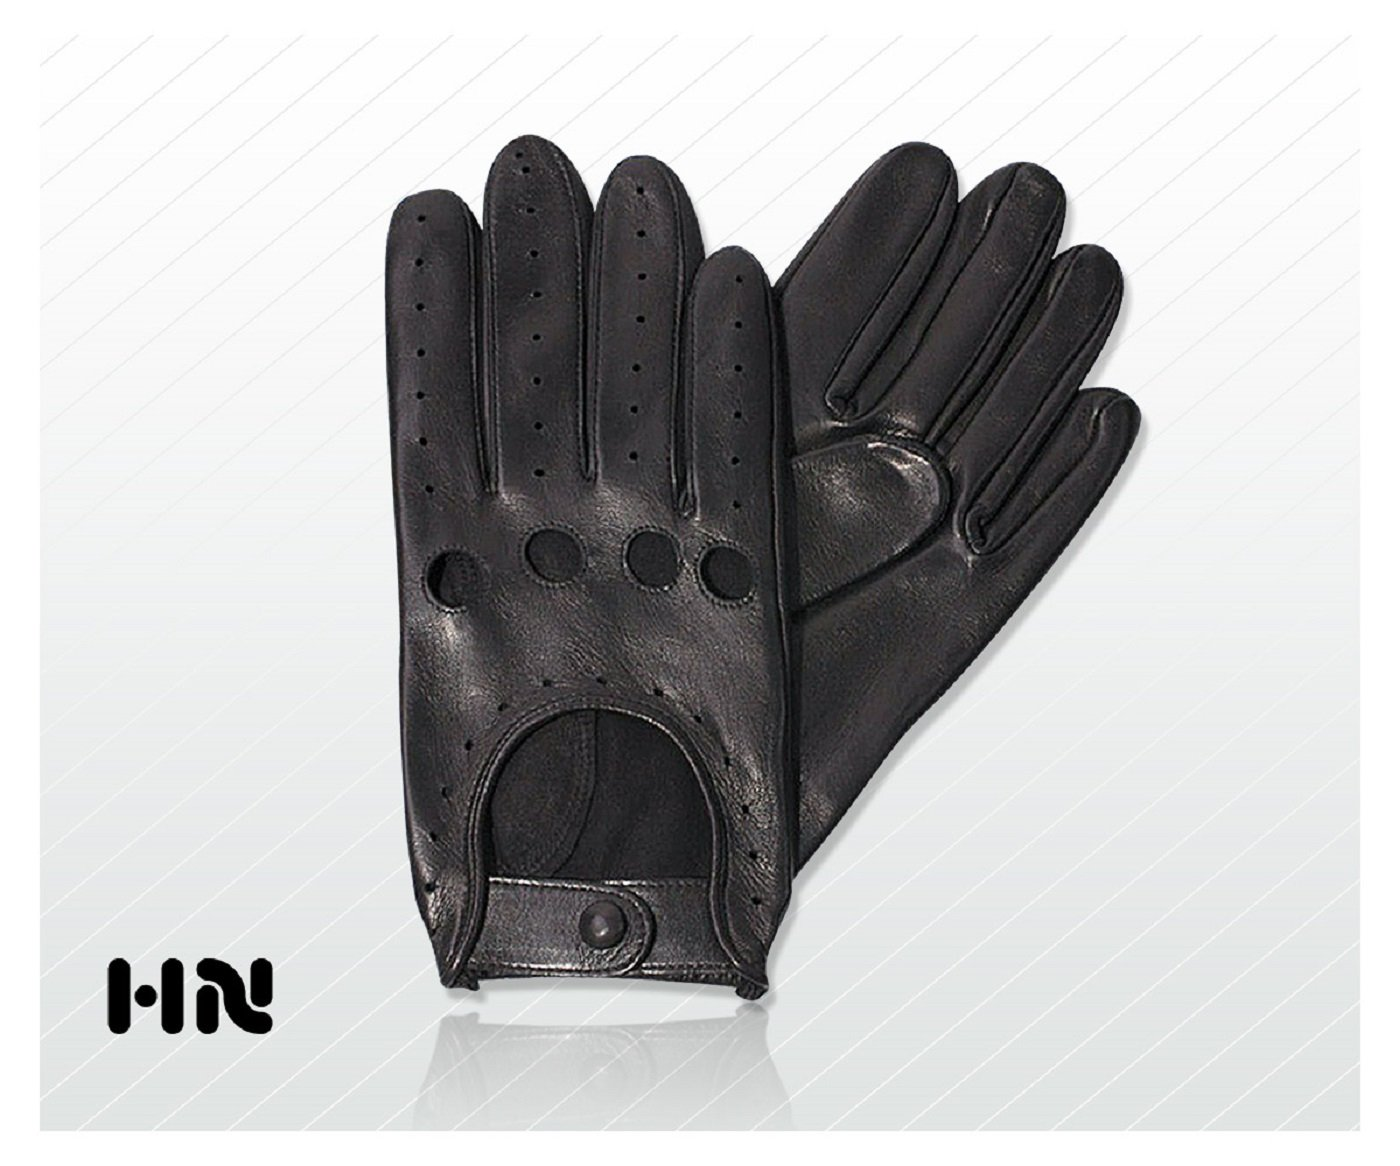 Mens leather gloves amazon uk - Mens Classic Driving Gloves 505 Chauffeur Lambskin Leather Dress Fashion Motor Bike Glove Vintage